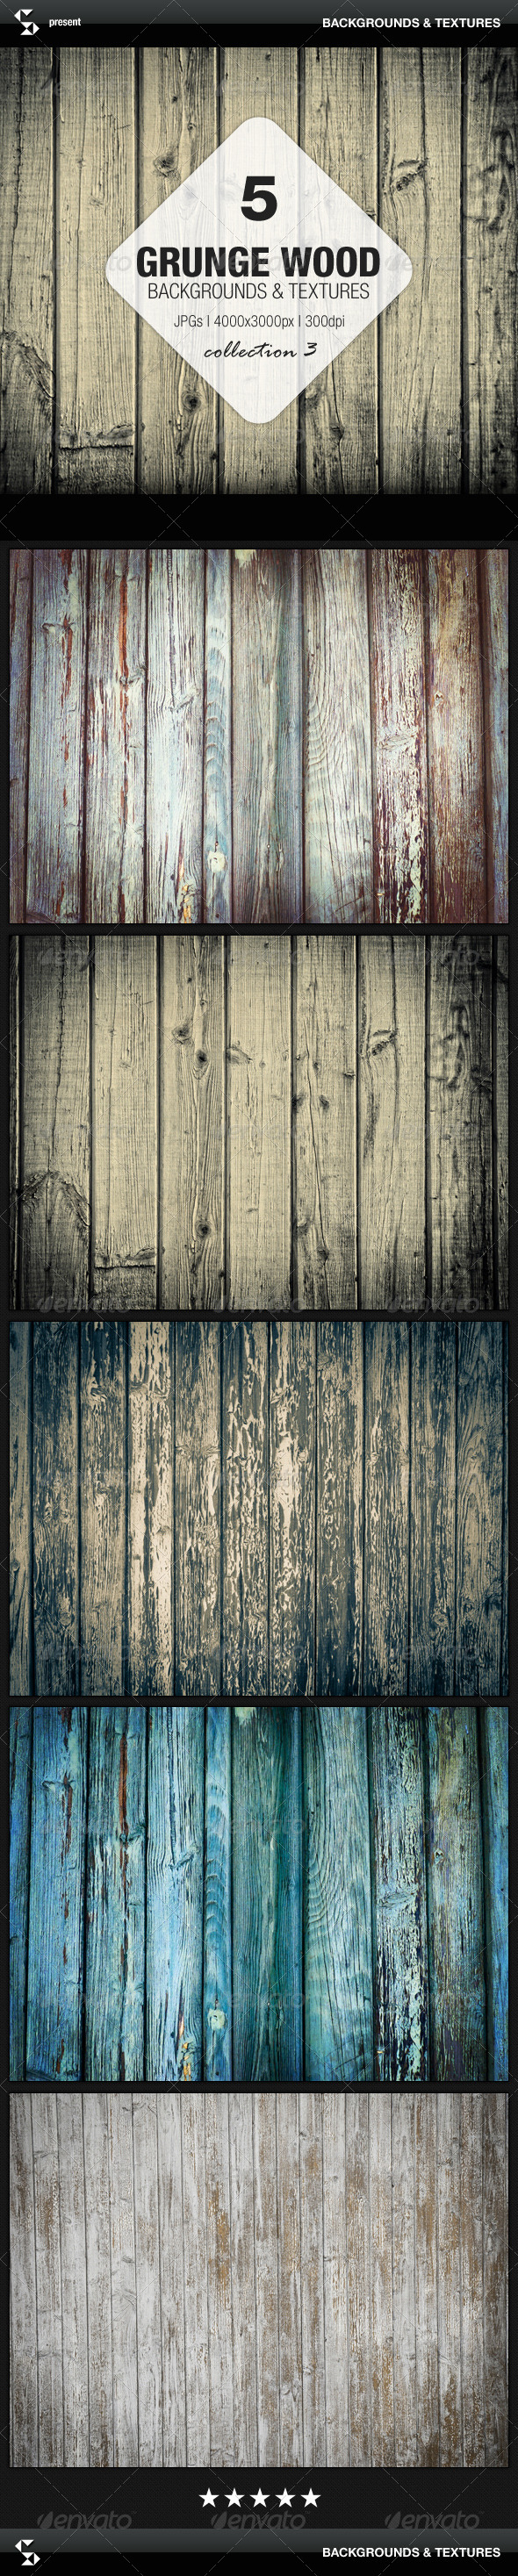 Grunge Wood Backgrounds - Collection 3 - Nature Backgrounds